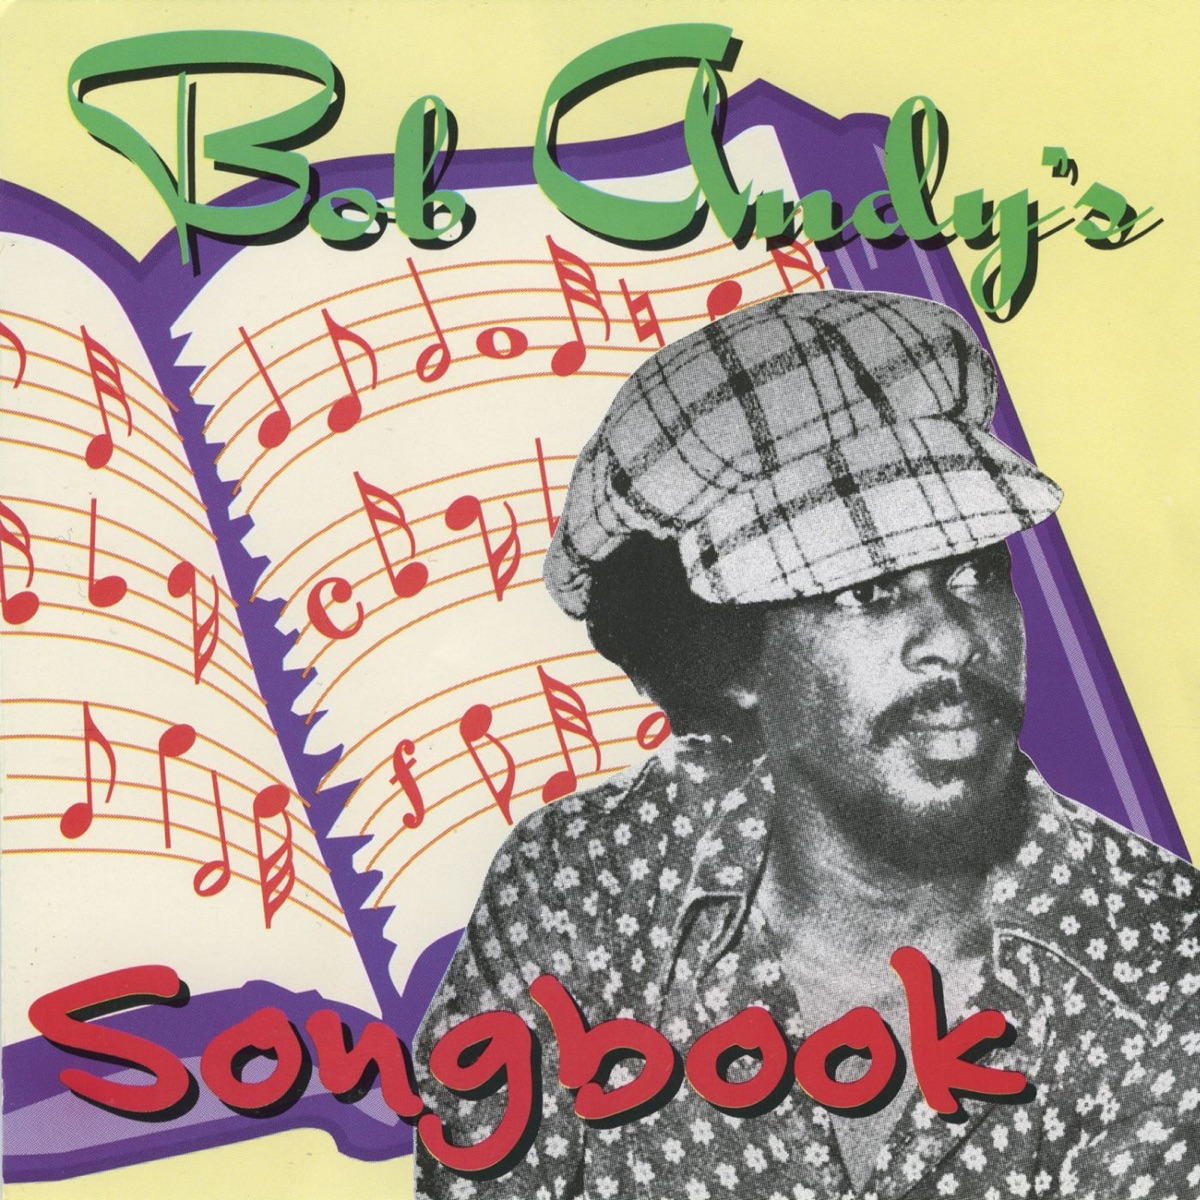 Songbook Bob Andy CD cover